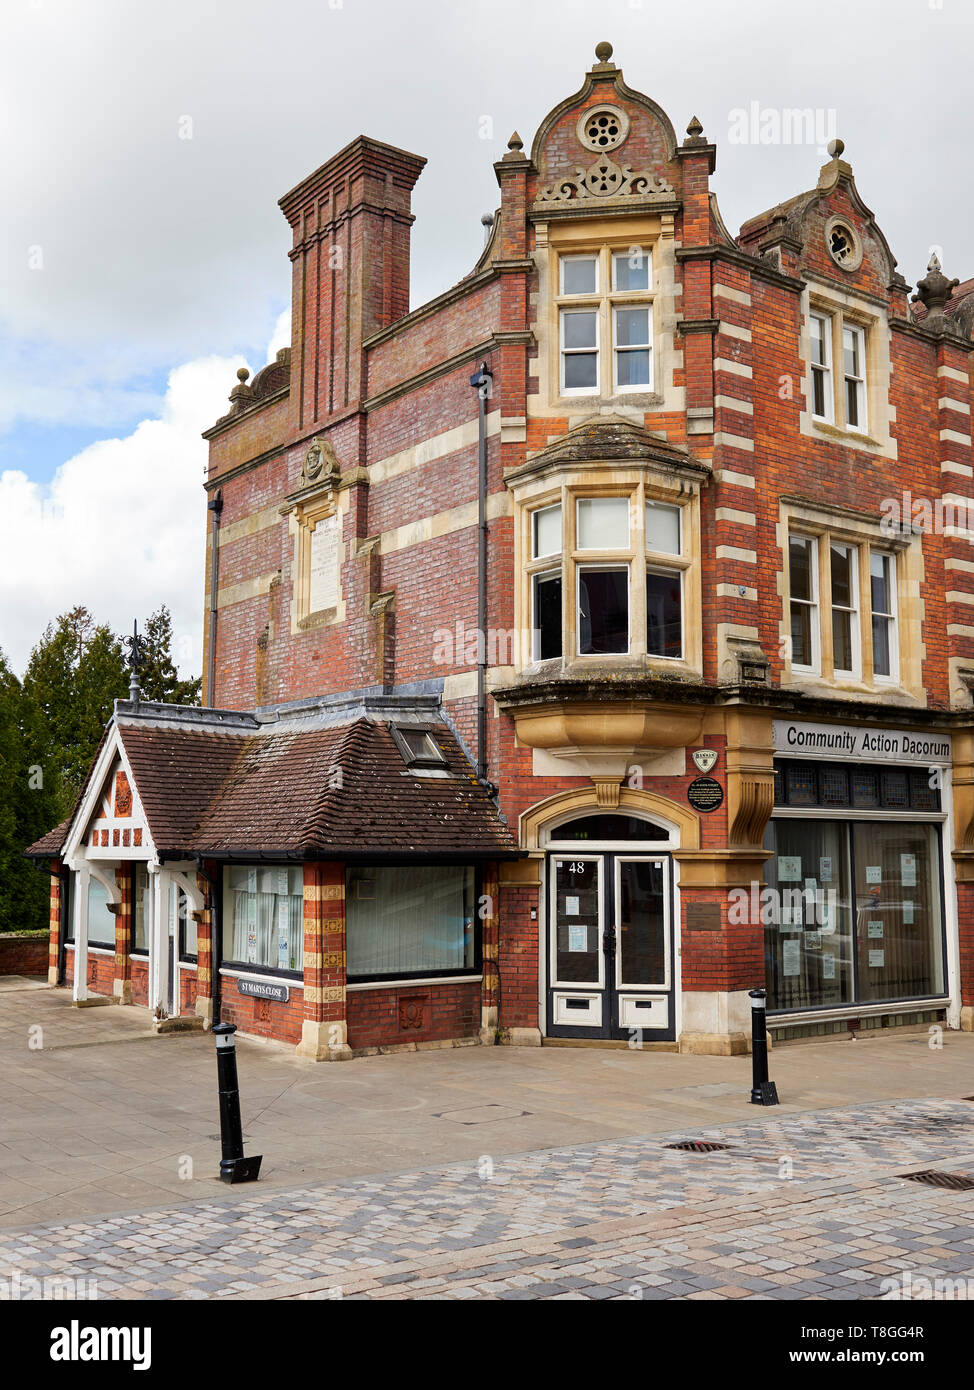 Building used as The Tambury Gazette in the hit-series After Life, starring Ricky Gervais. Old Hemel. - Stock Image